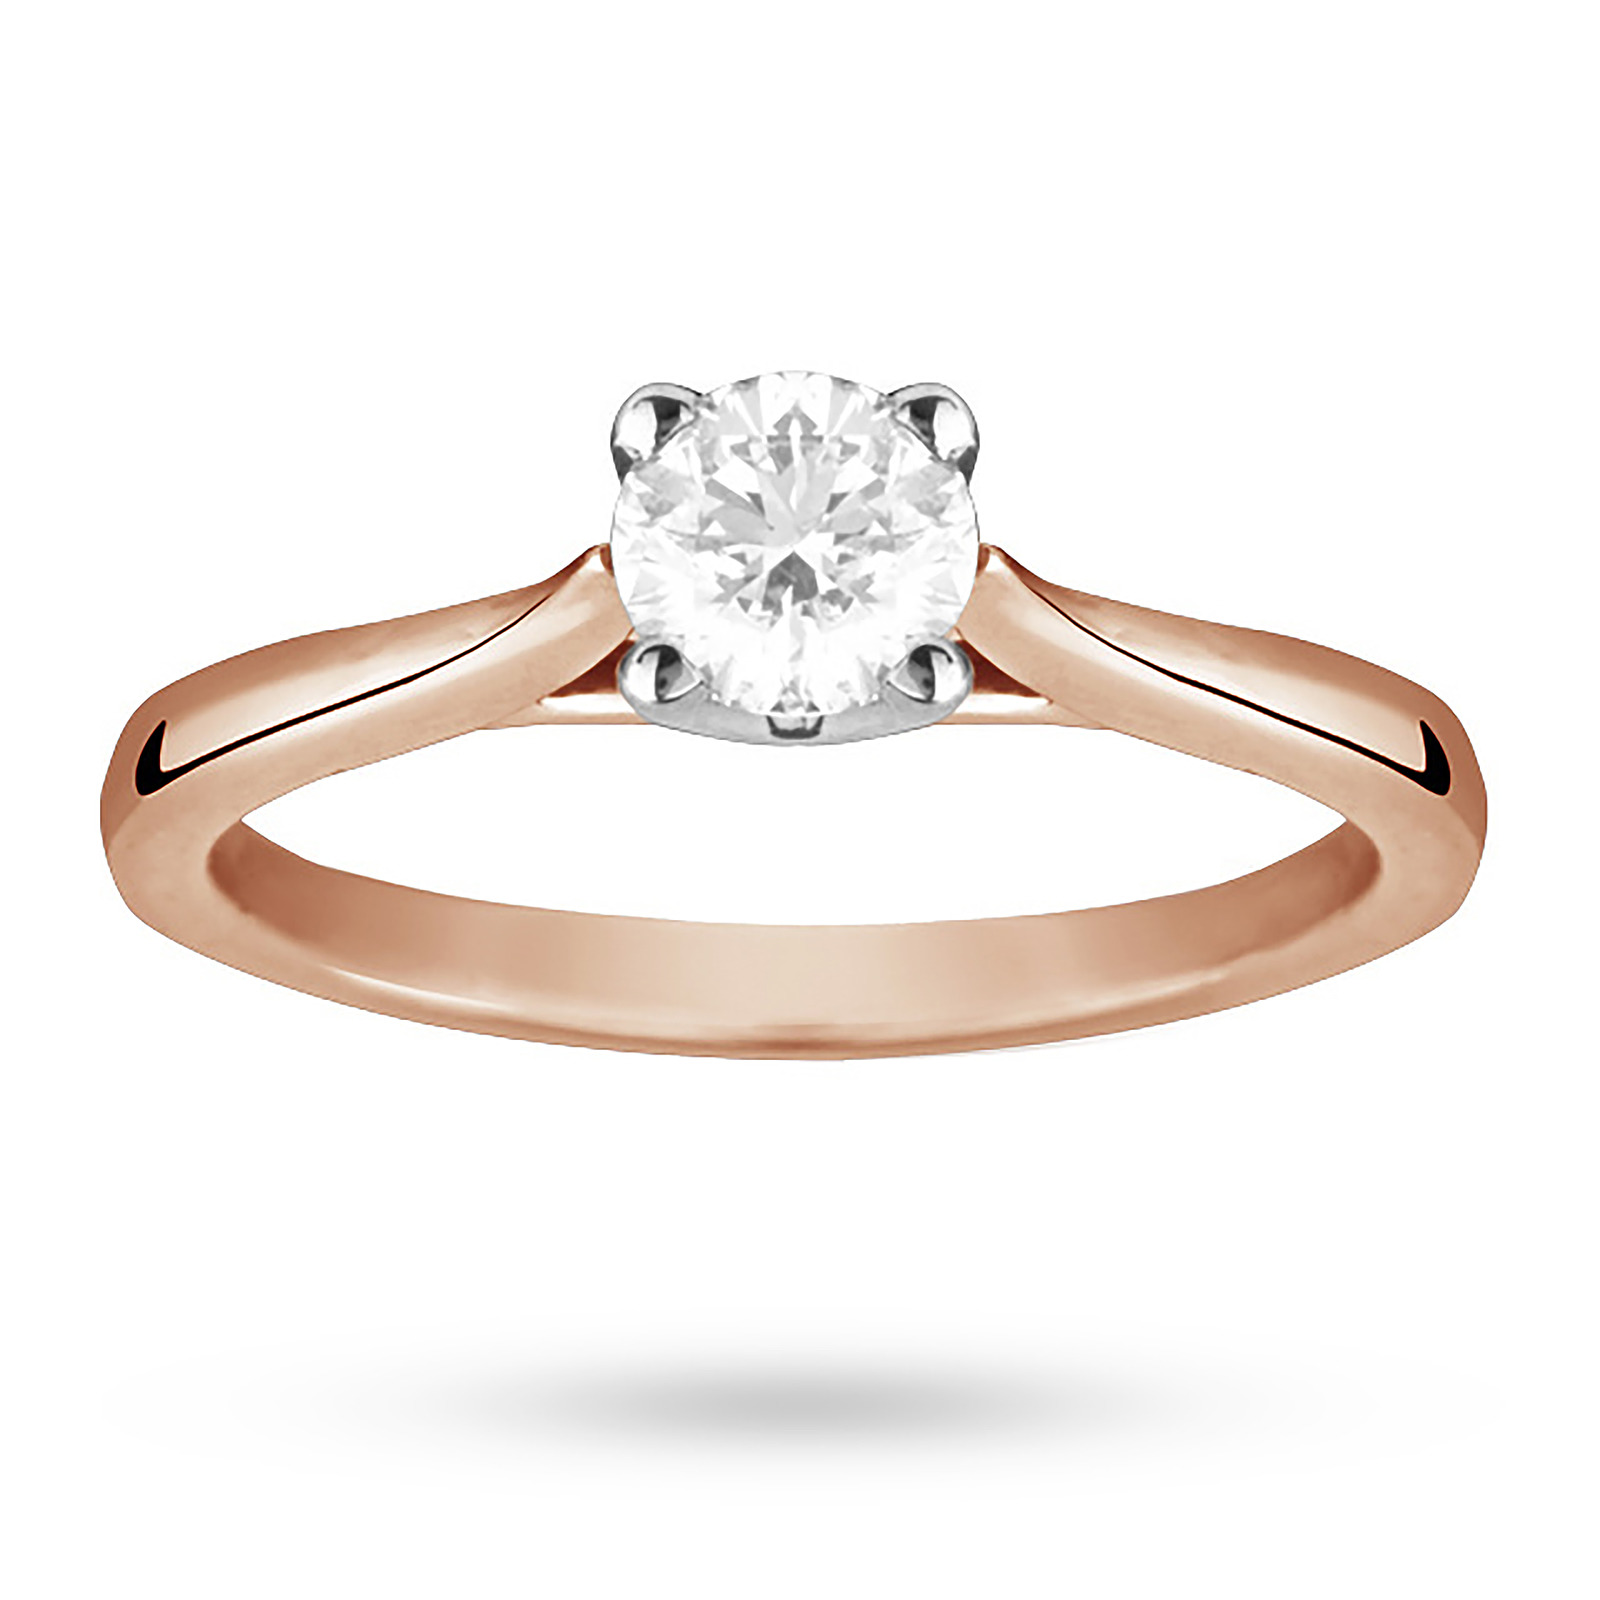 Solitaire Brilliant Cut 0.50 Carat Diamond Ring Set In 18 Carat Rose Gold